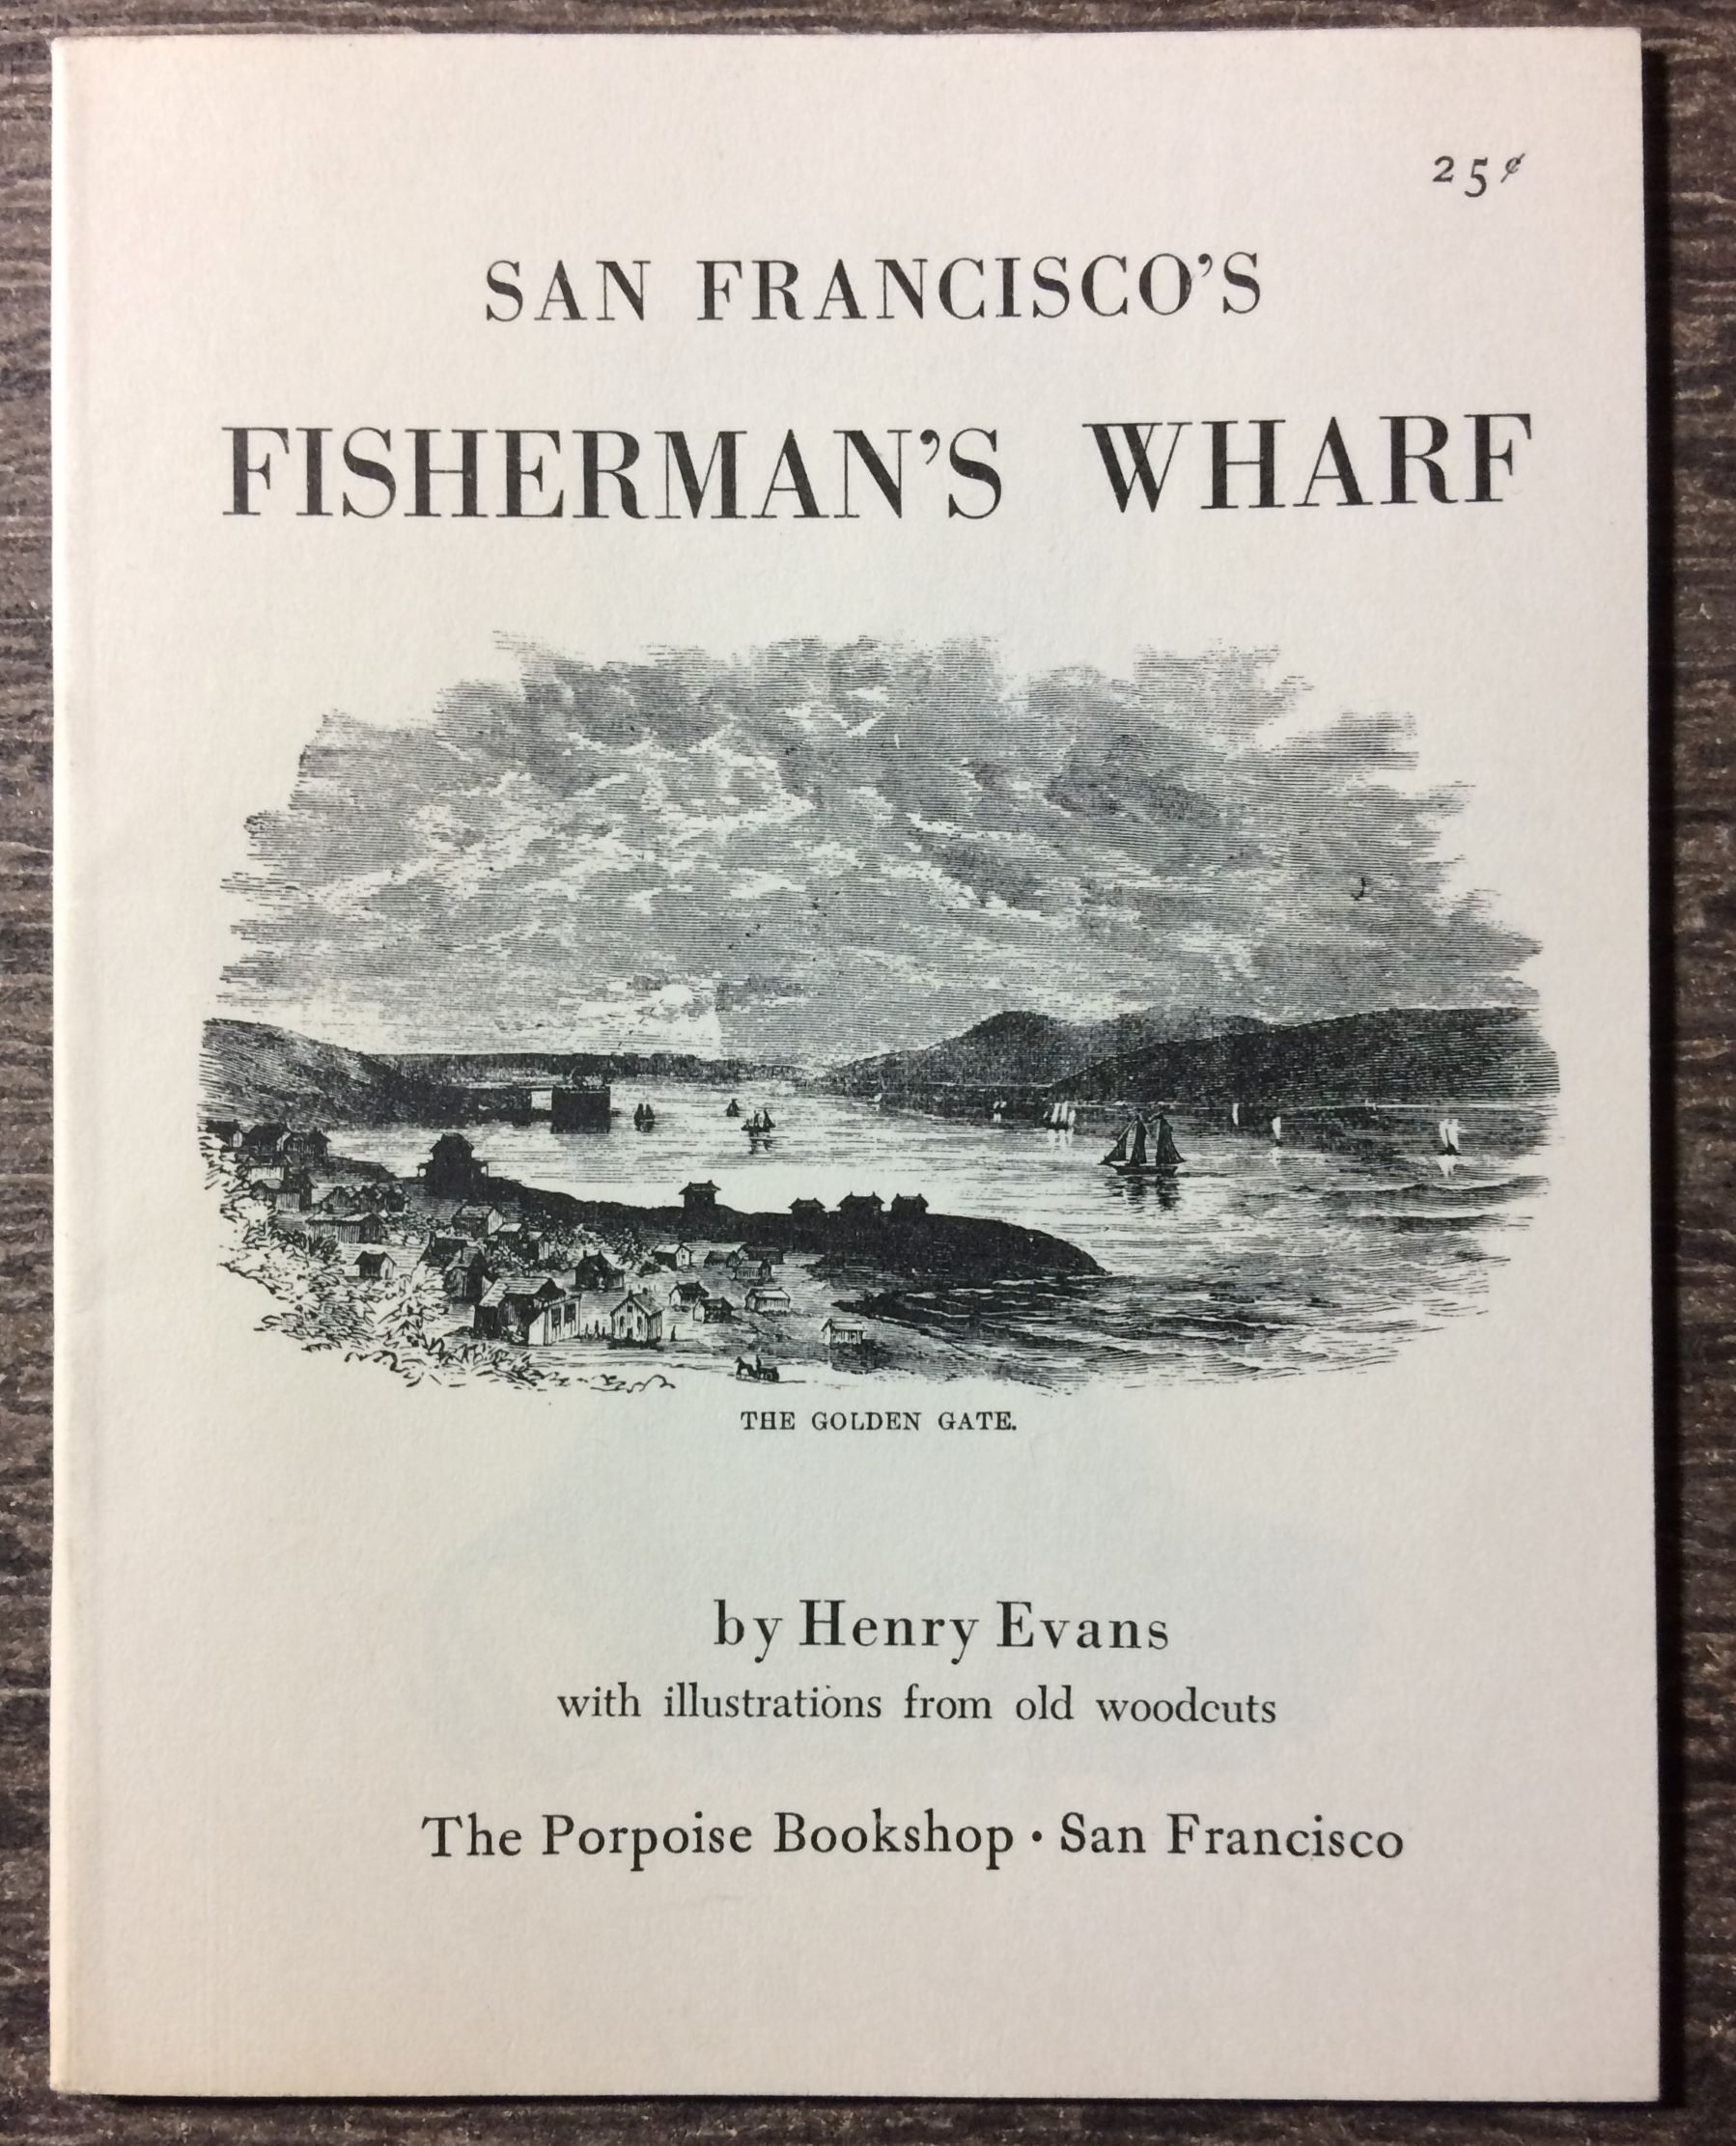 Image for San Francisco's Fisherman's Wharf, with illustrations from woodcuts.